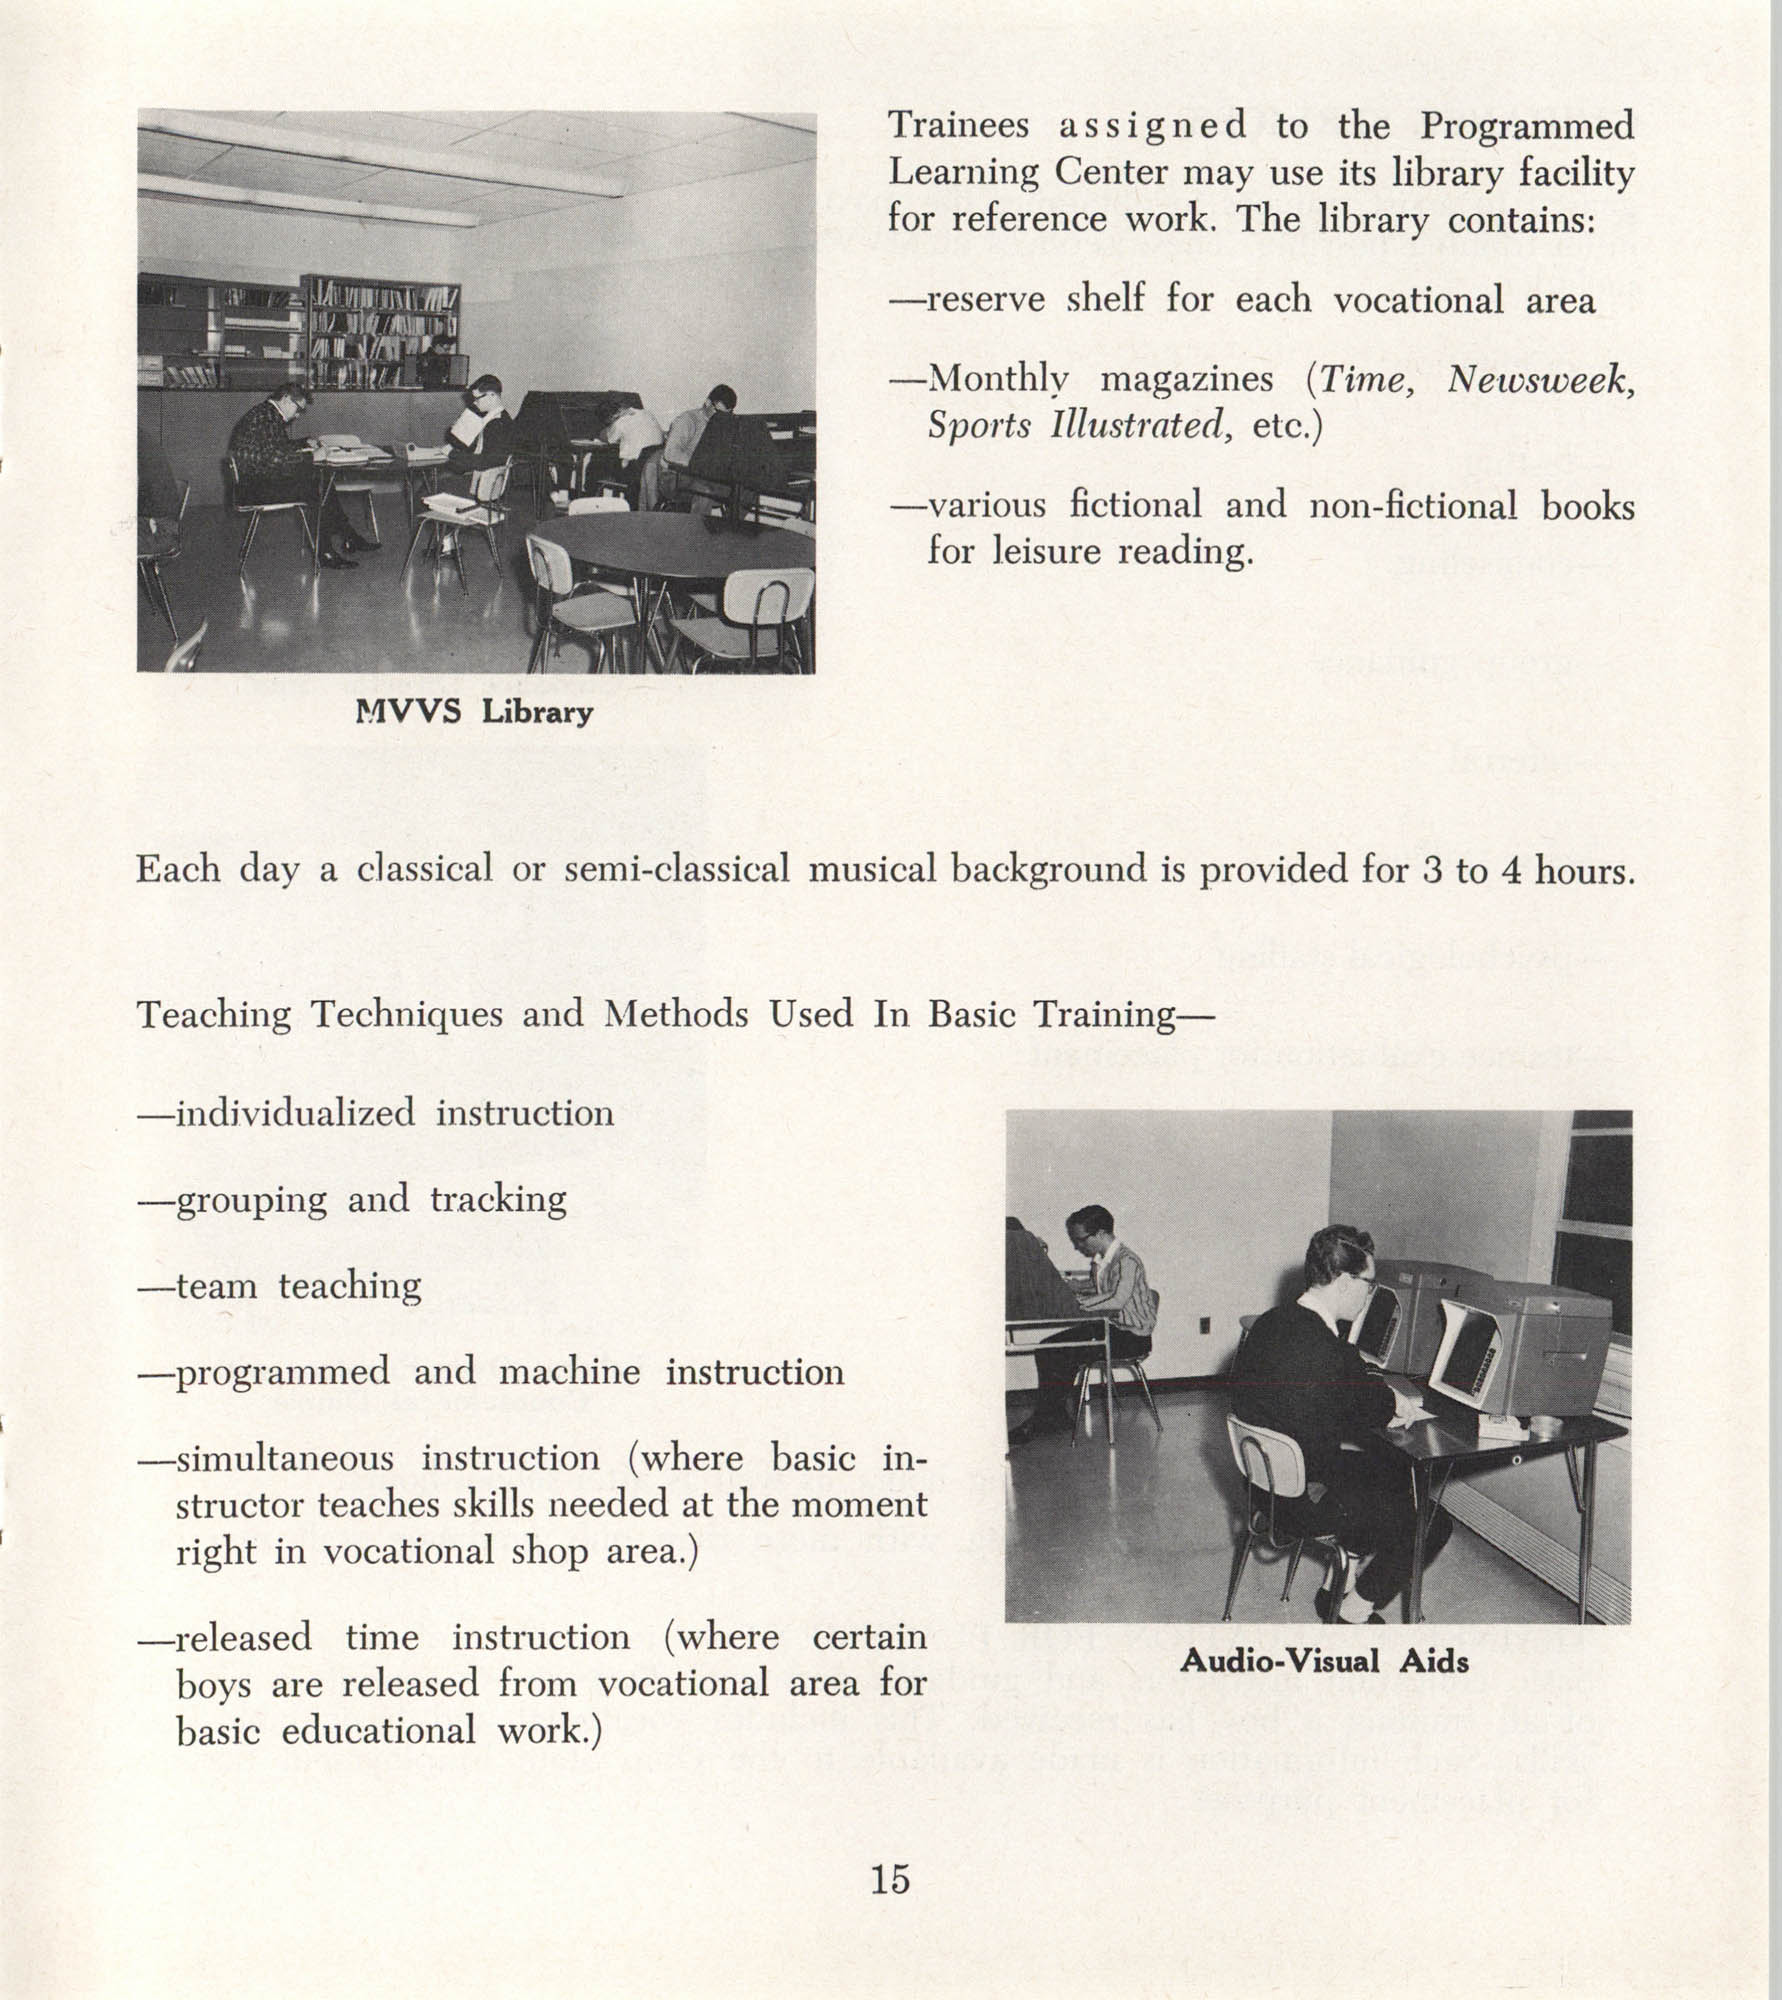 Mahoning Valley Vocational School Pamphlet, Page 15